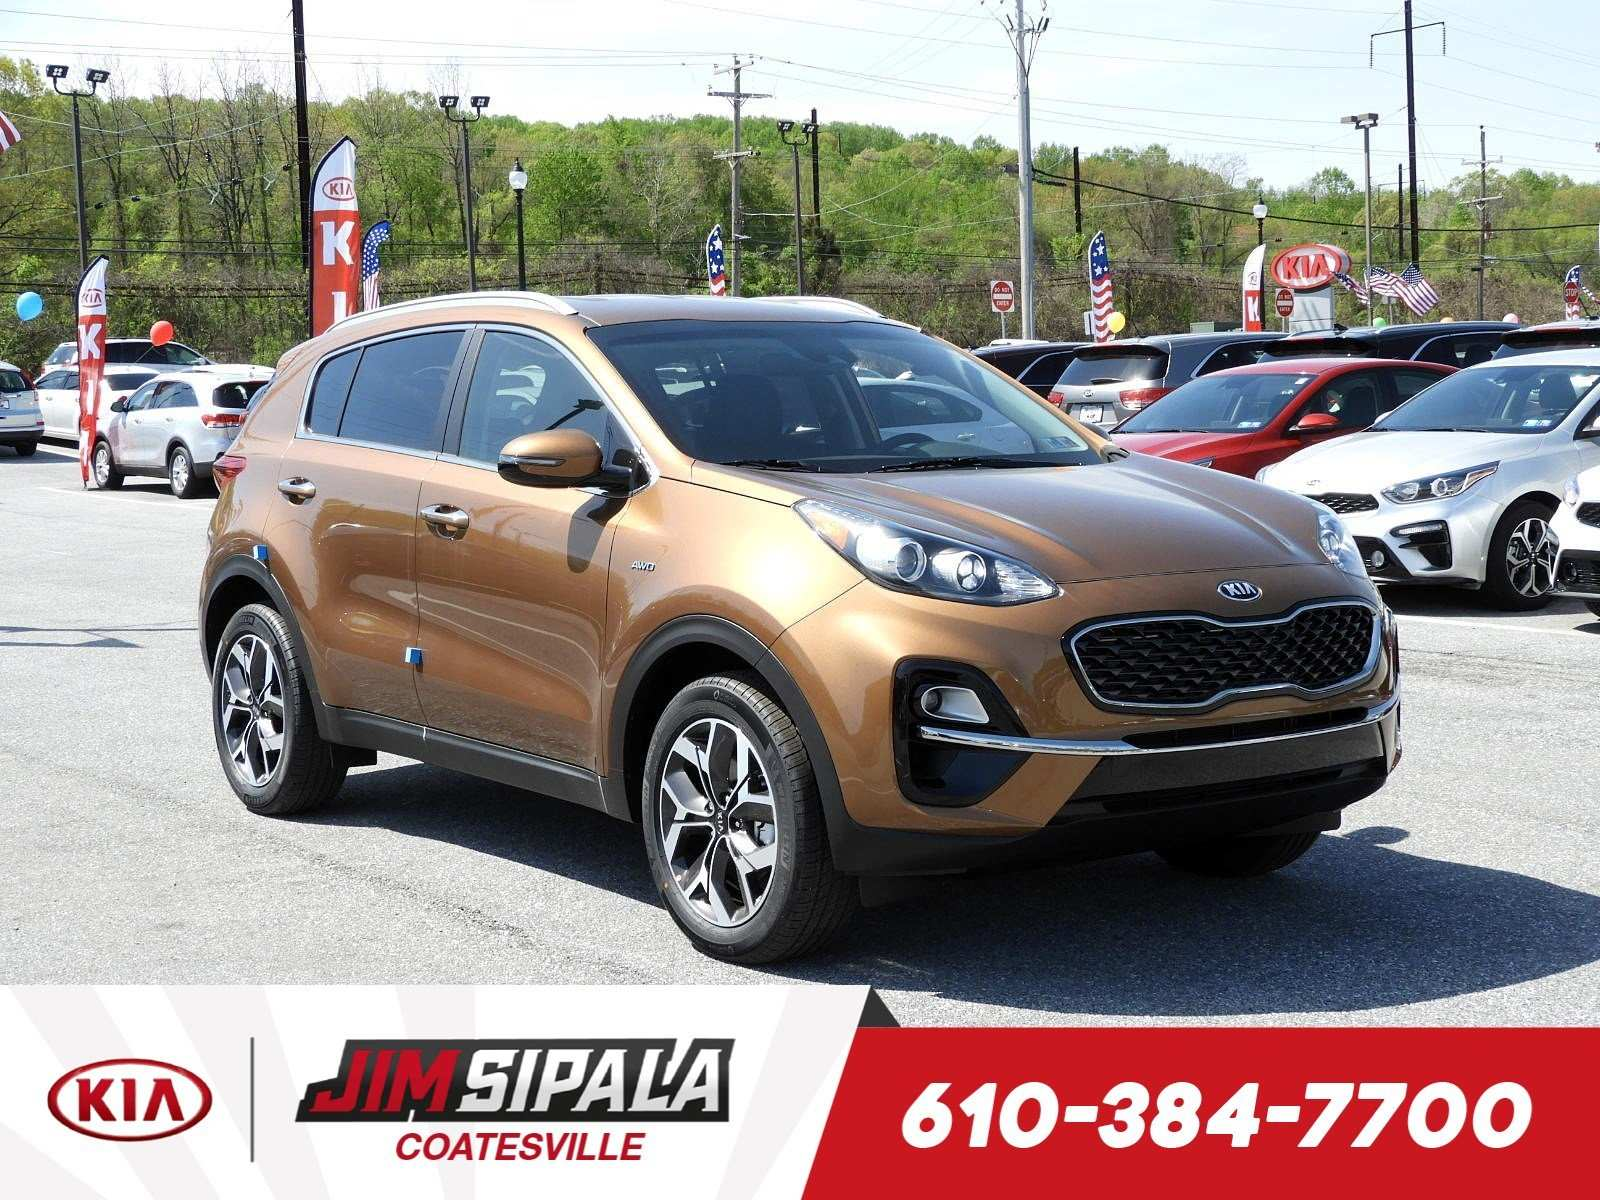 71 A 2020 Kia Sportage Photos